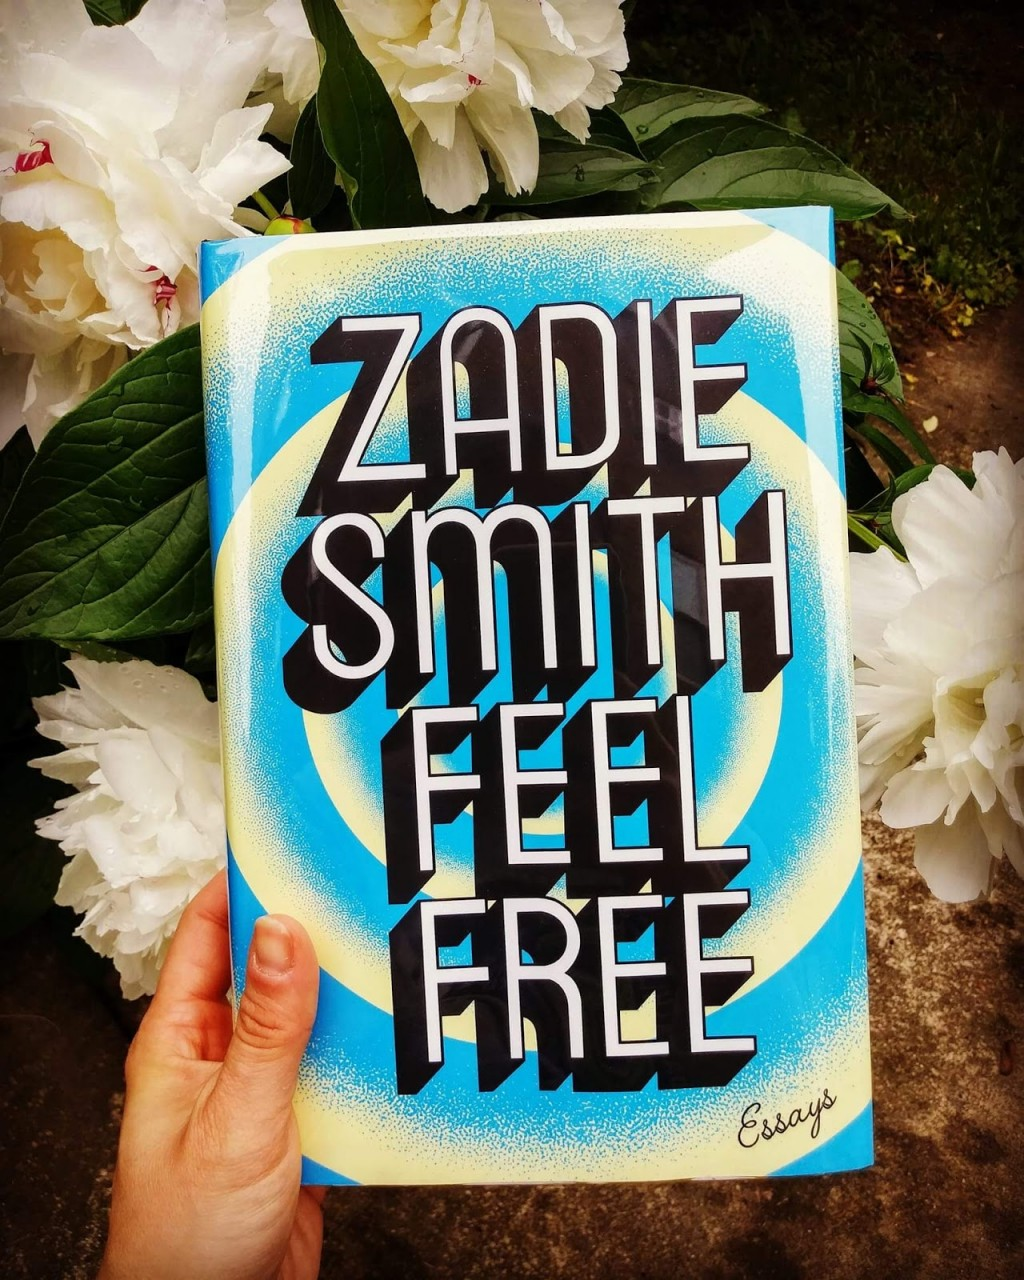 005 33186851 2081800258703093 8881318672442851328 O Zadie Smith Essays Essay Wonderful Amazon Radio 4 Large